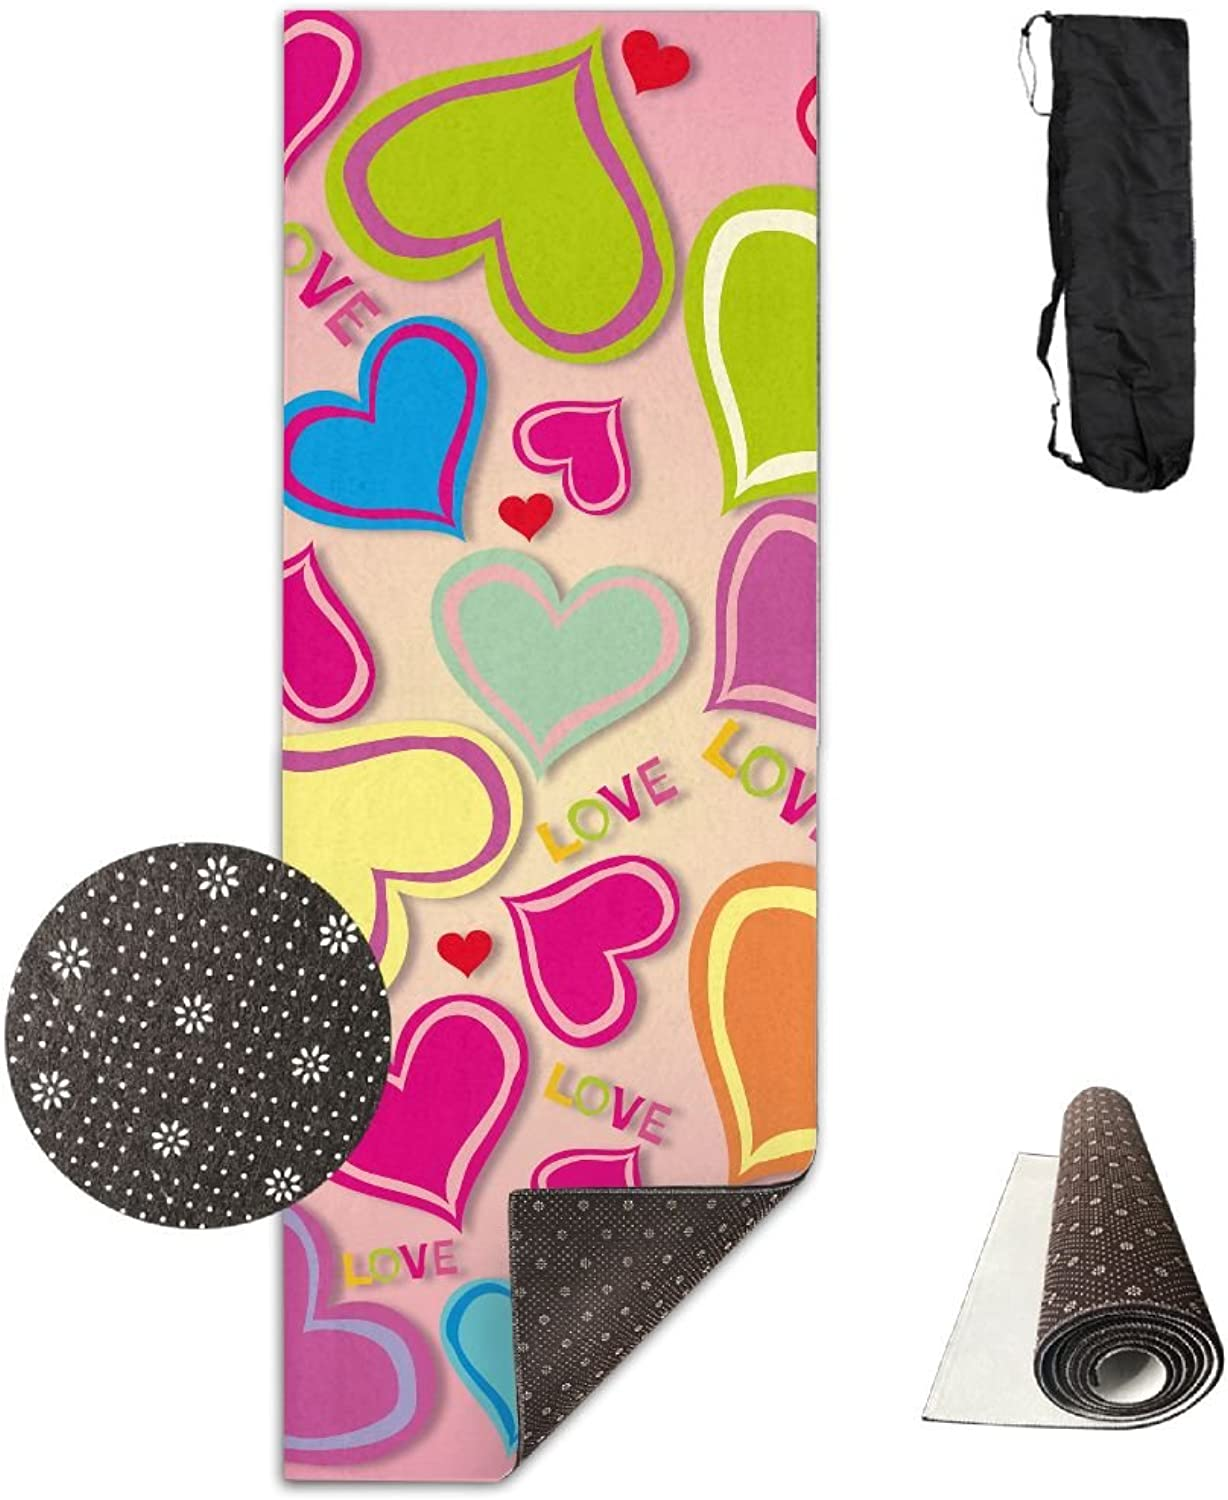 Yoga Mat Non Slip 24  X 71  Exercise Mats Vector Graphics colorful Premium Fitness Pilates Carrying Strap